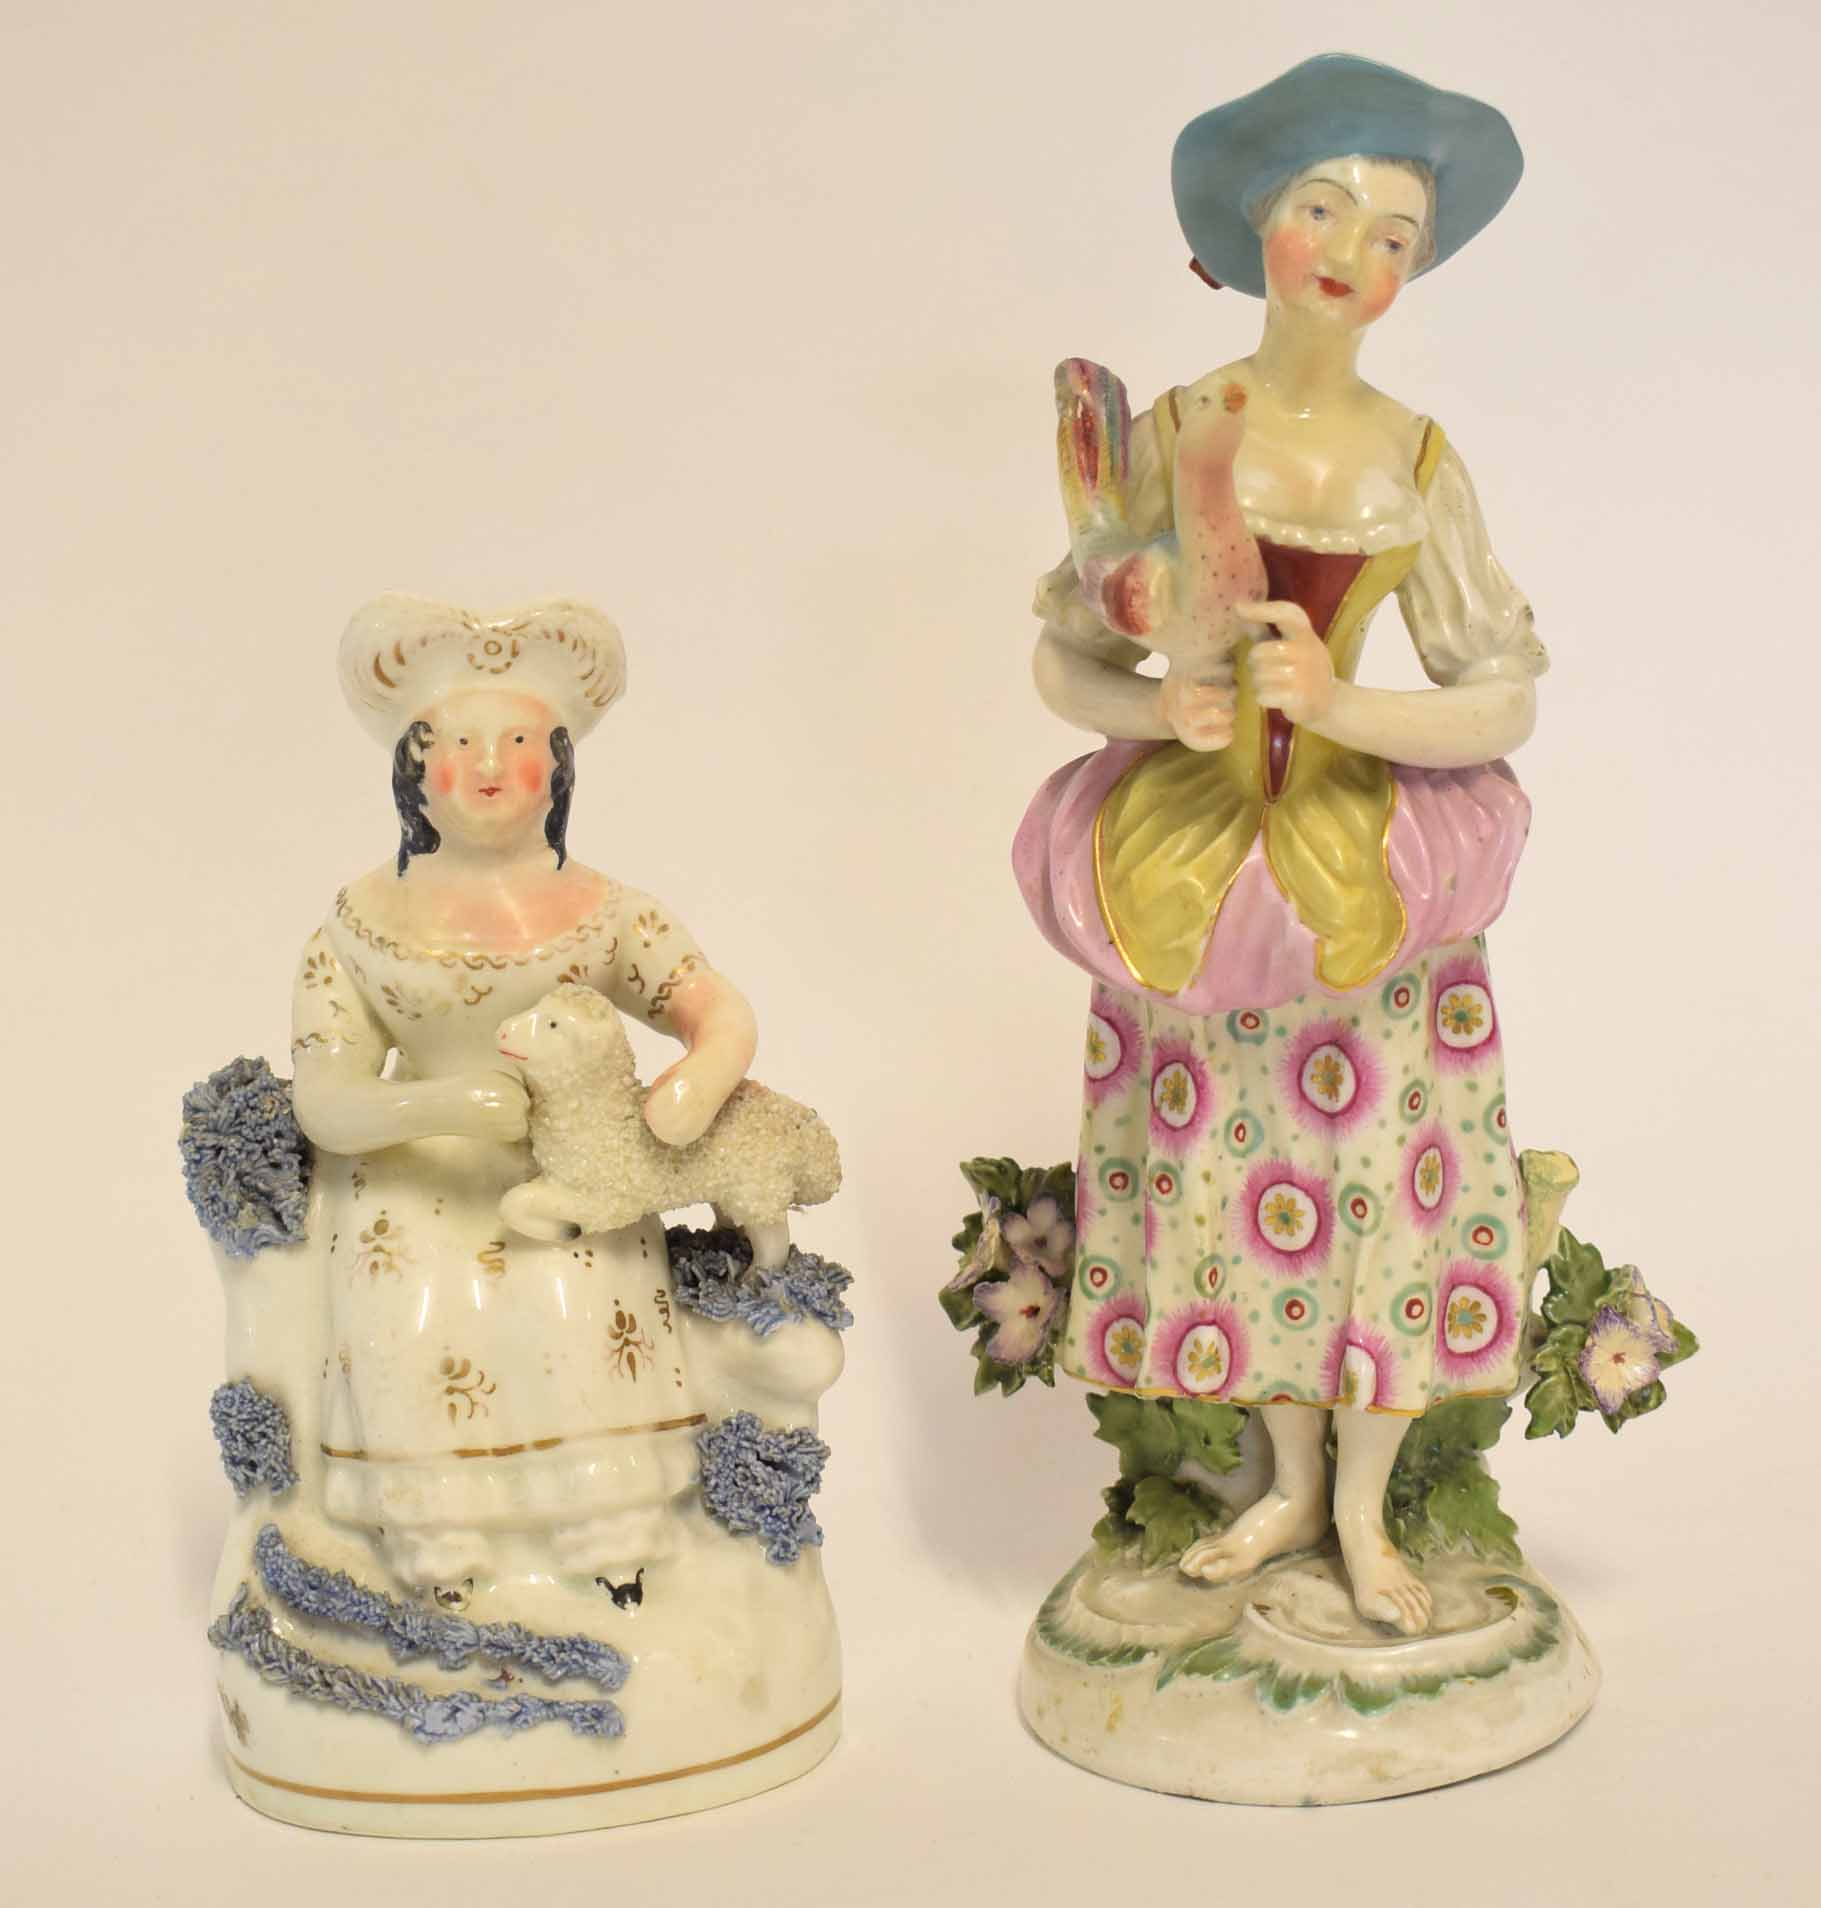 Lot 104 - Staffordshire porcelain figurine of a lady with a poodle together with a Derby porcelain group of